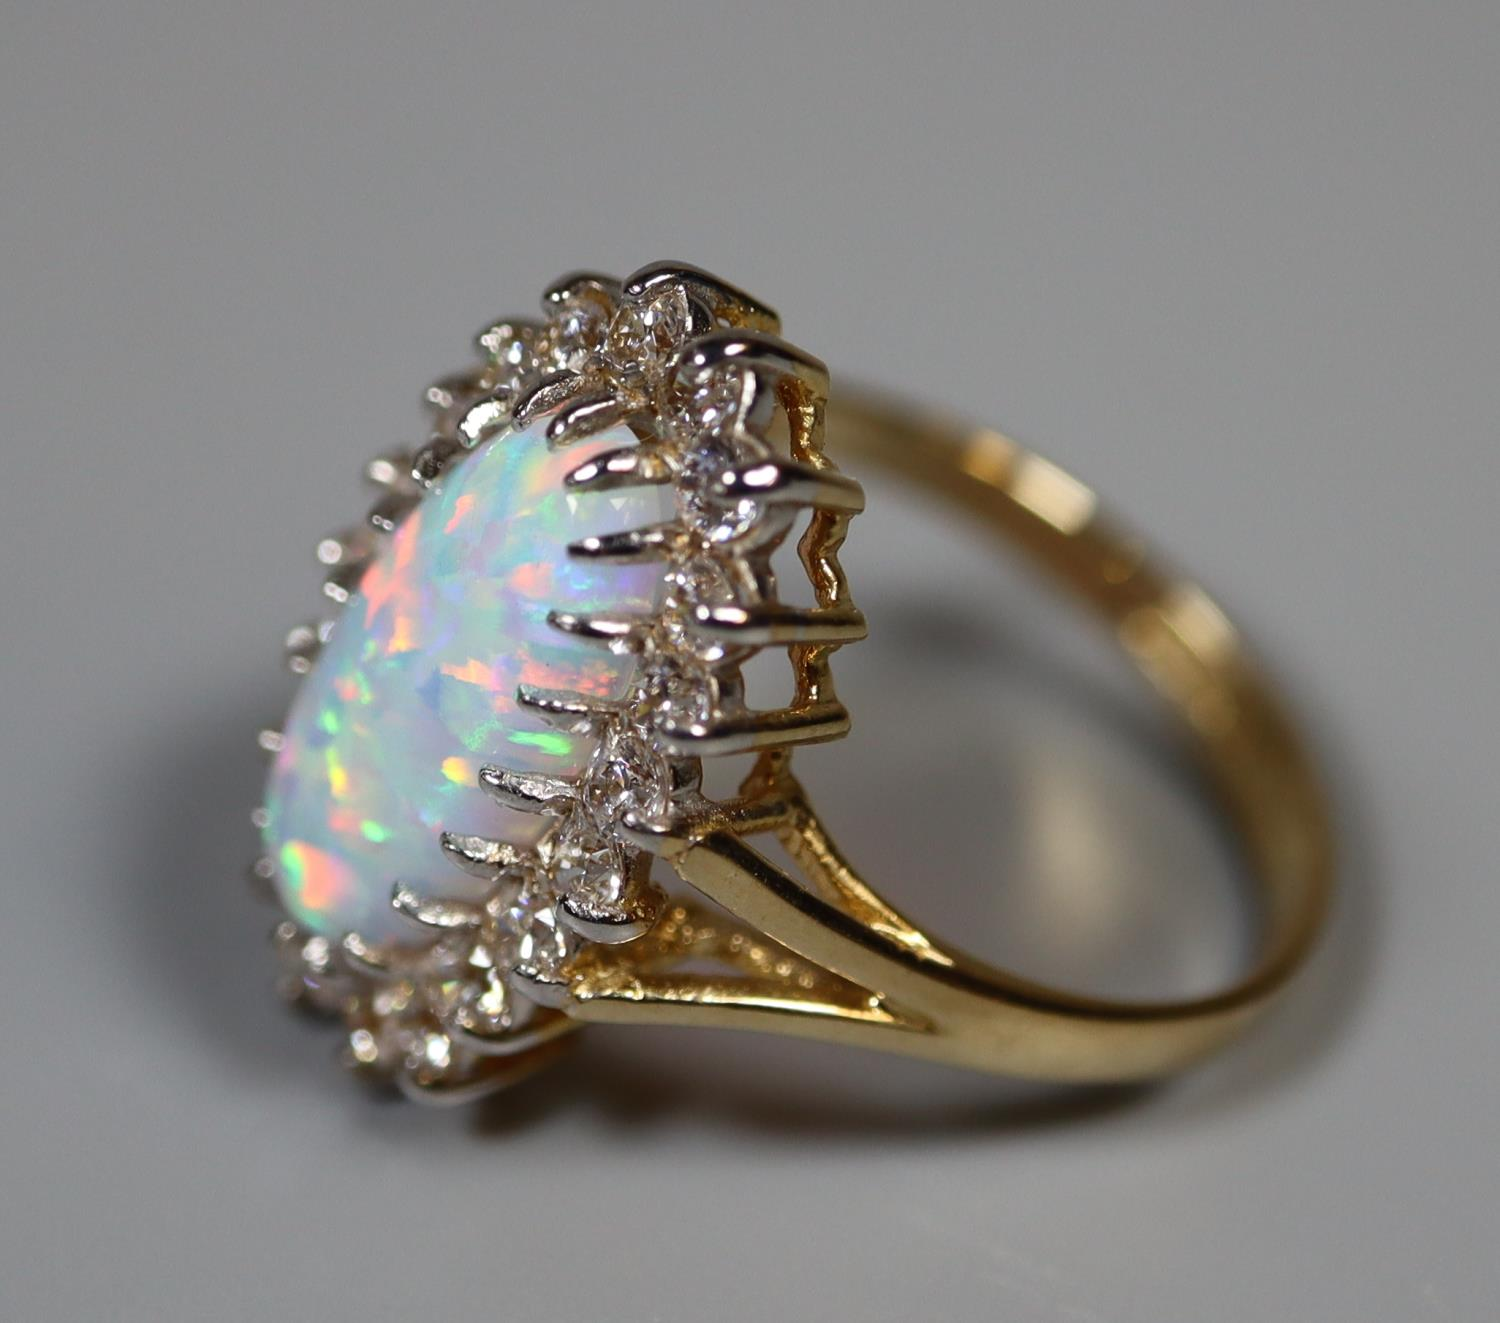 9ct gold synthetic opal and white stone ring. Ring size L. Weight approx 3.2 grams. (B.P. 21% + VAT) - Image 3 of 3